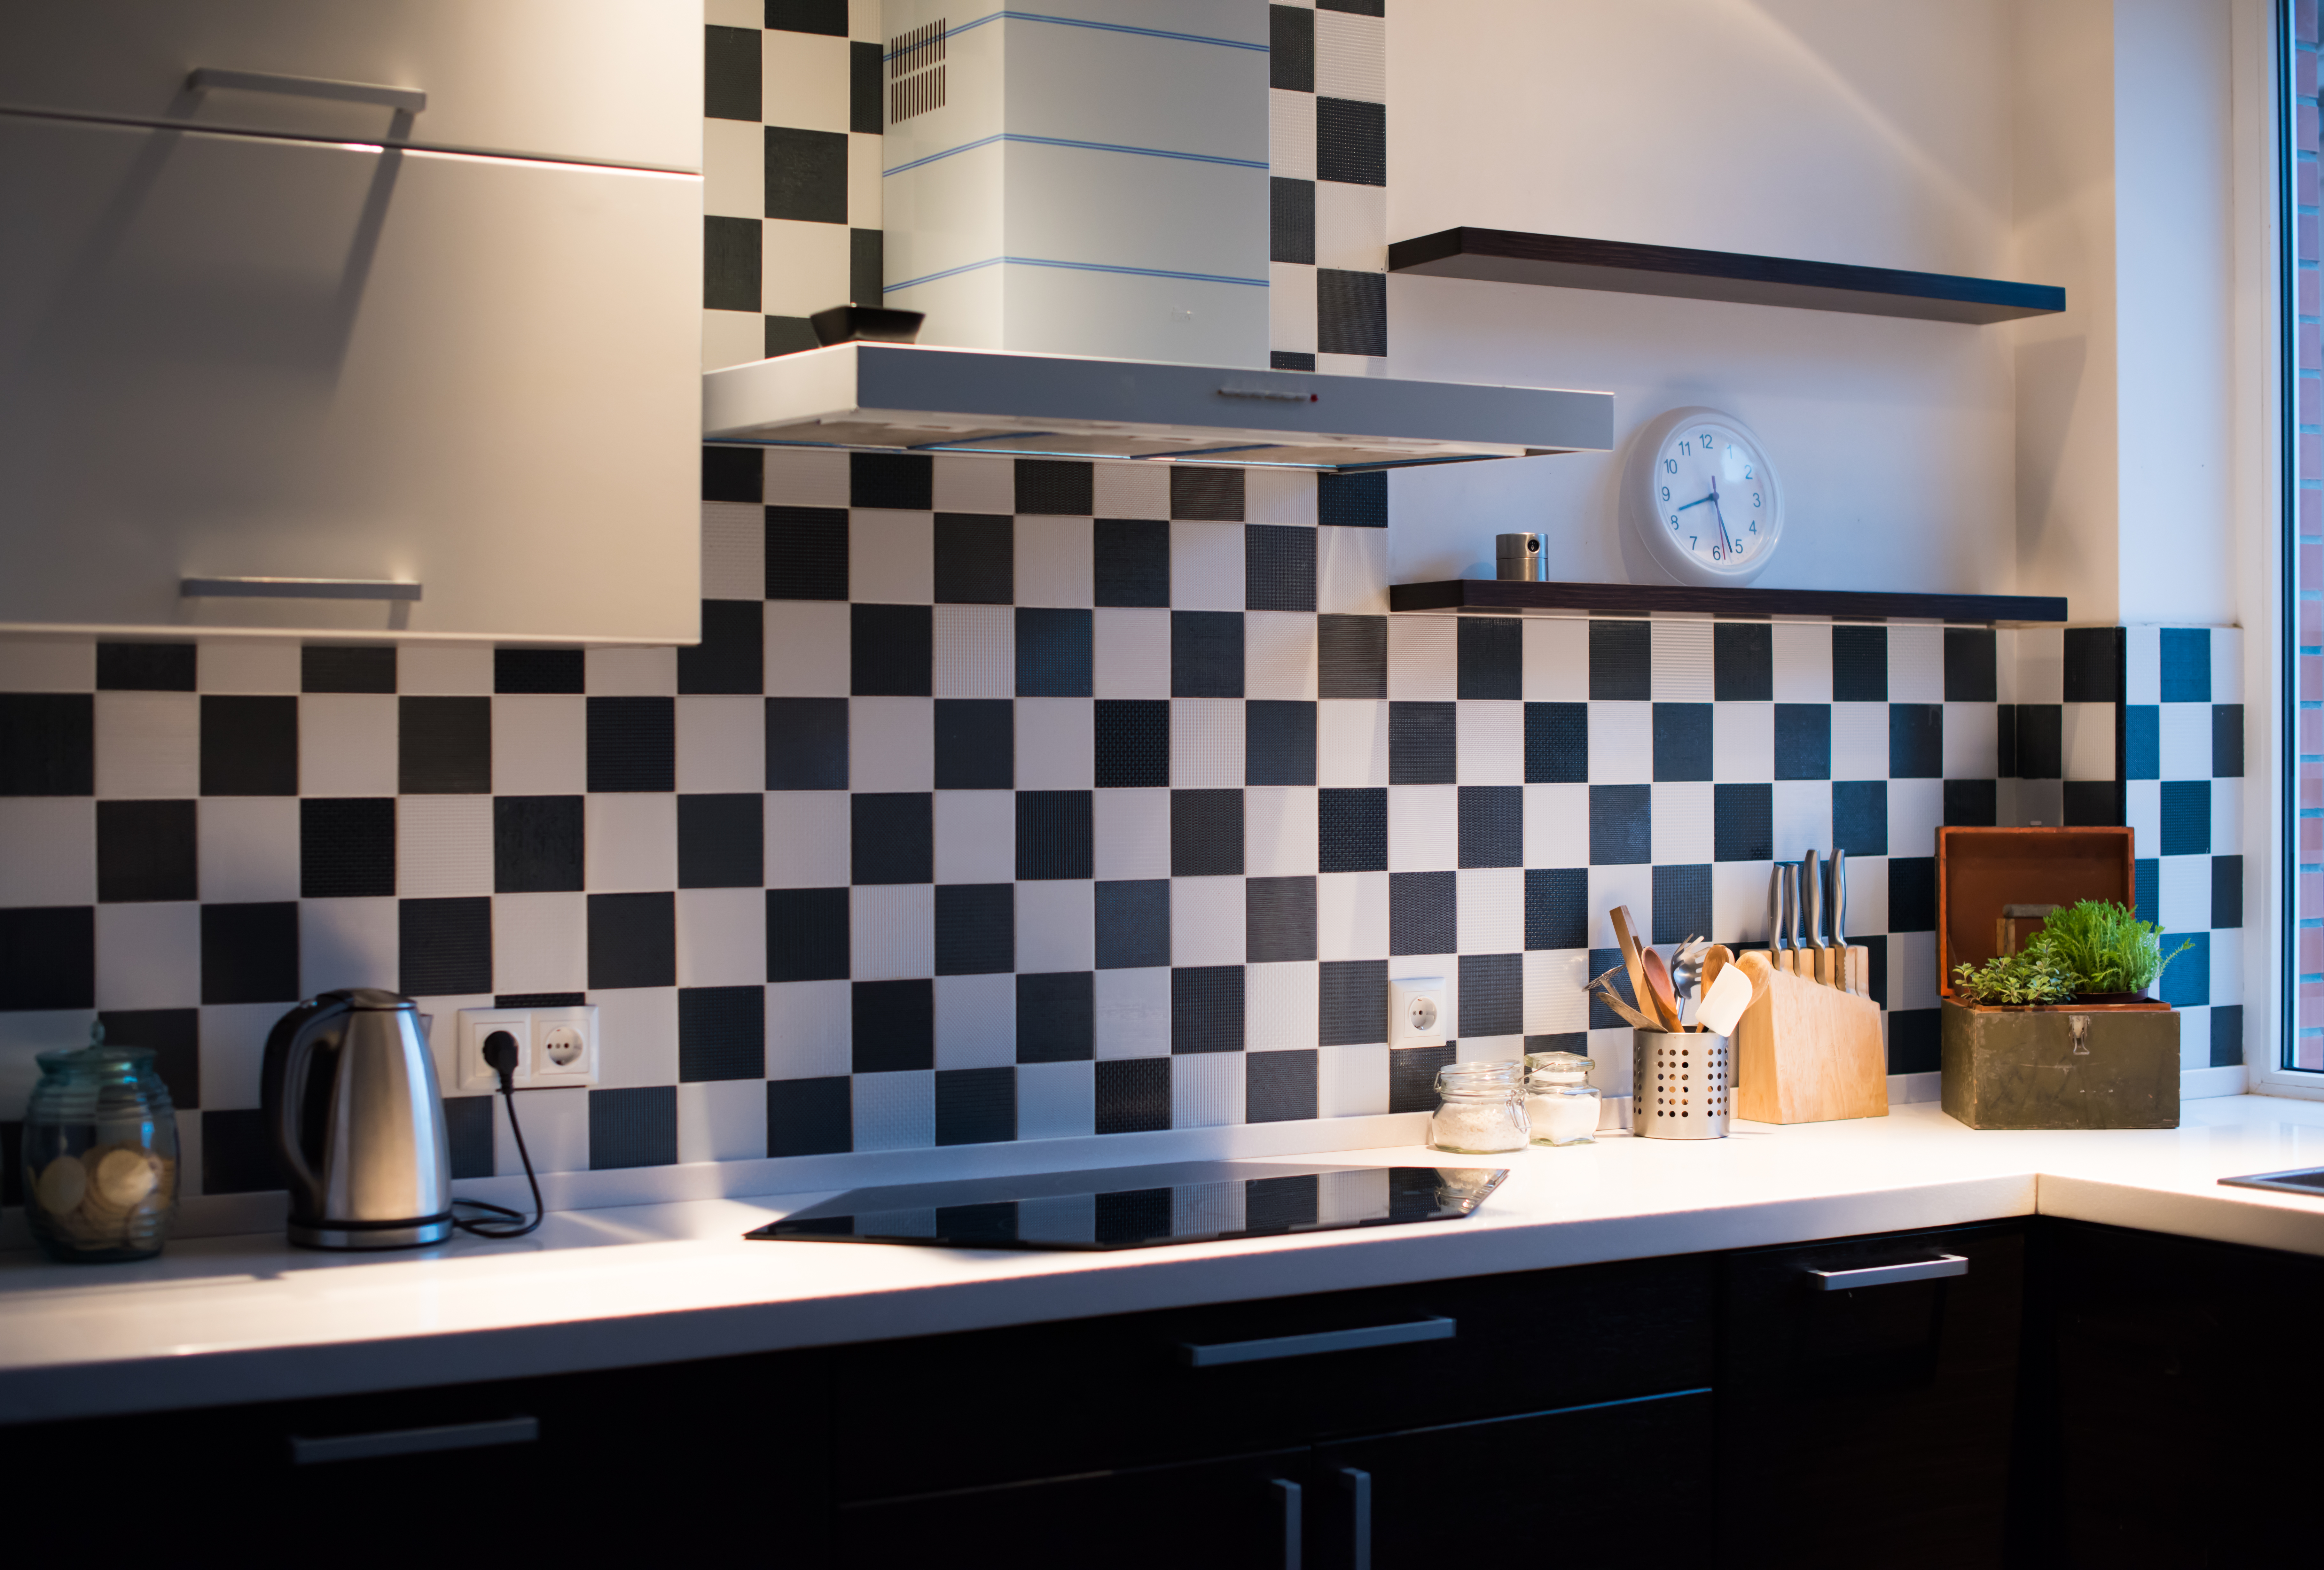 - Compare Kitchen Backsplash Installation Costs & Prices